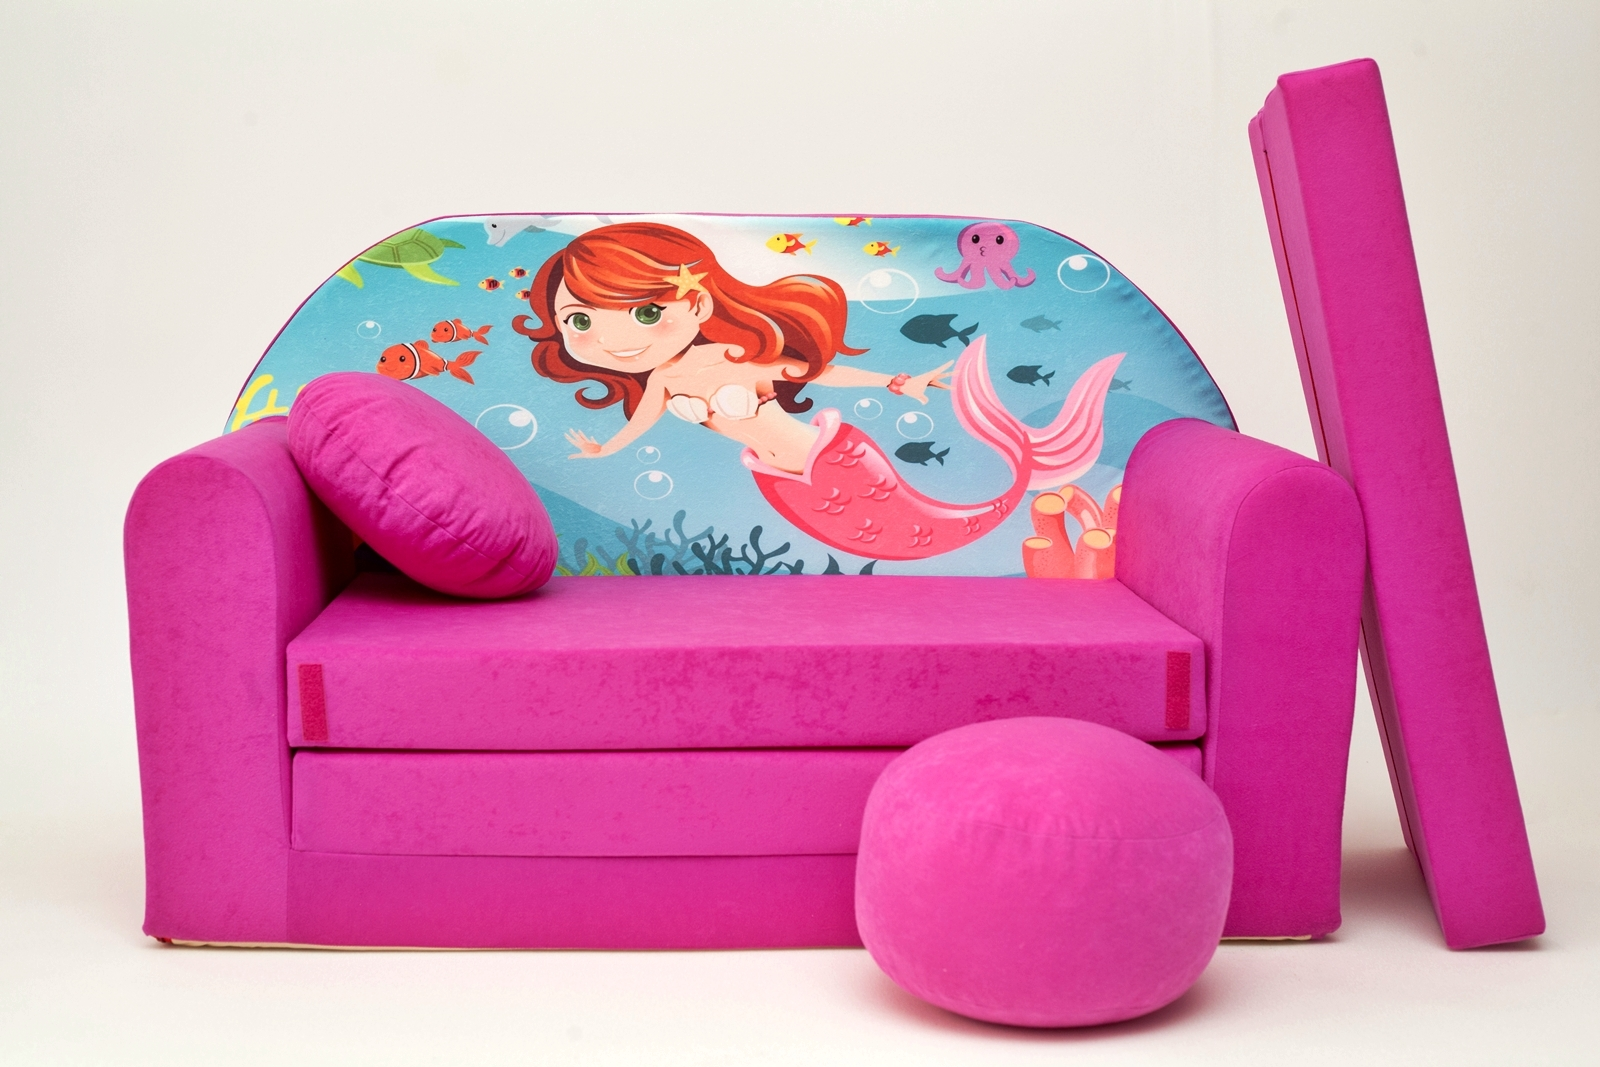 Kids Sofa Bed With Childrens Sofa Bed Chairs (Image 10 of 15)